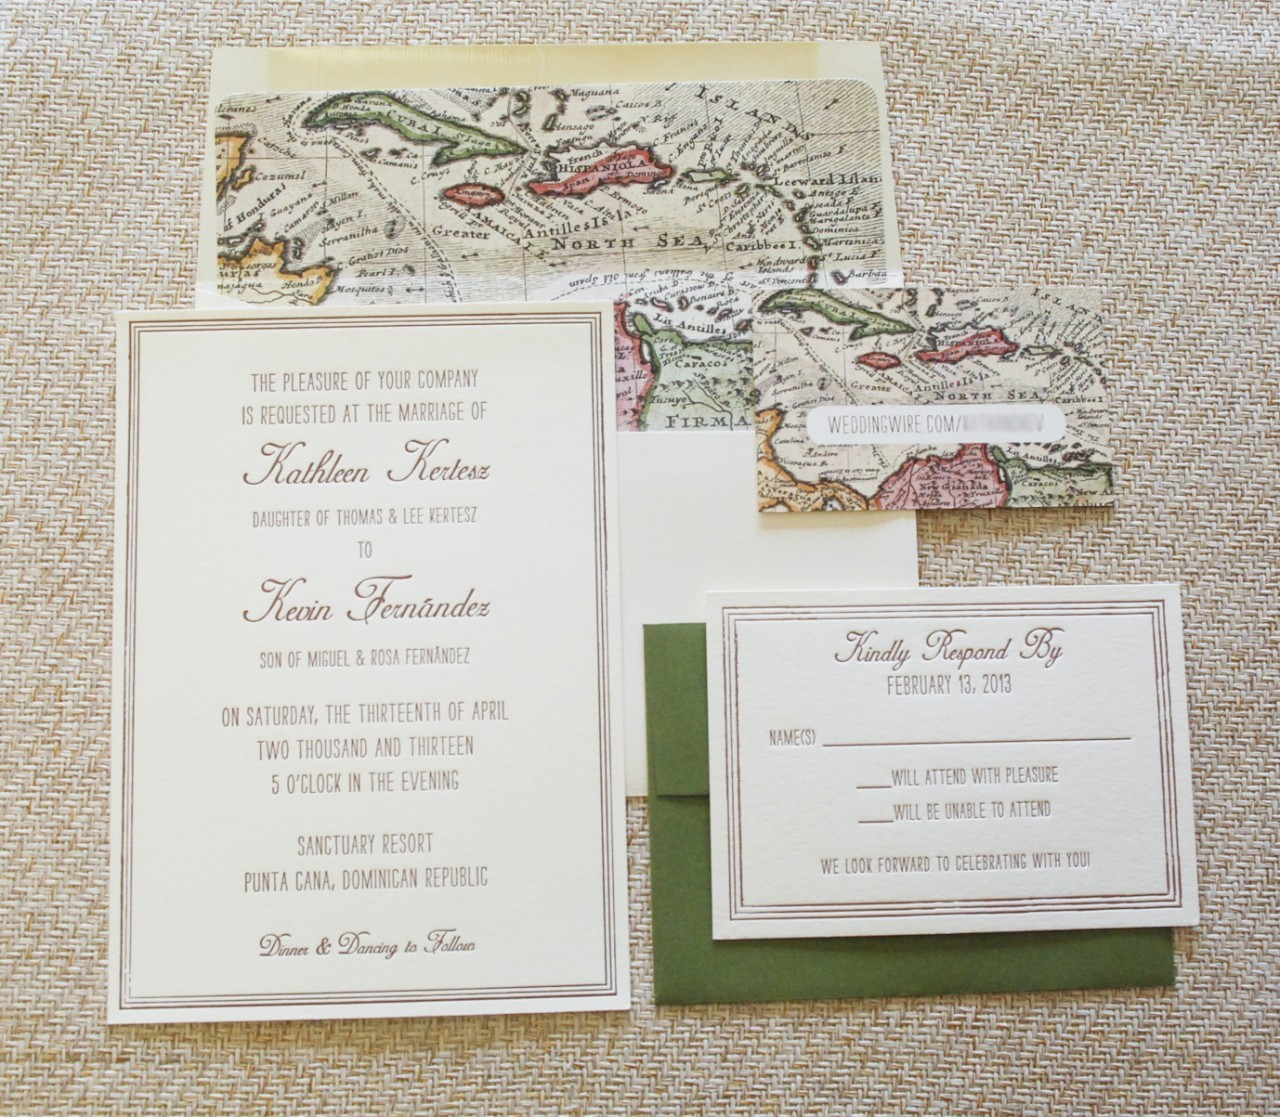 Soothing Flat Card Wedding Invitation Dominican Republic Wedding Invitations Destination Wedding Destination Wedding Invitations Passport Destination Wedding Invitations Bahamas wedding Destination Wedding Invitations